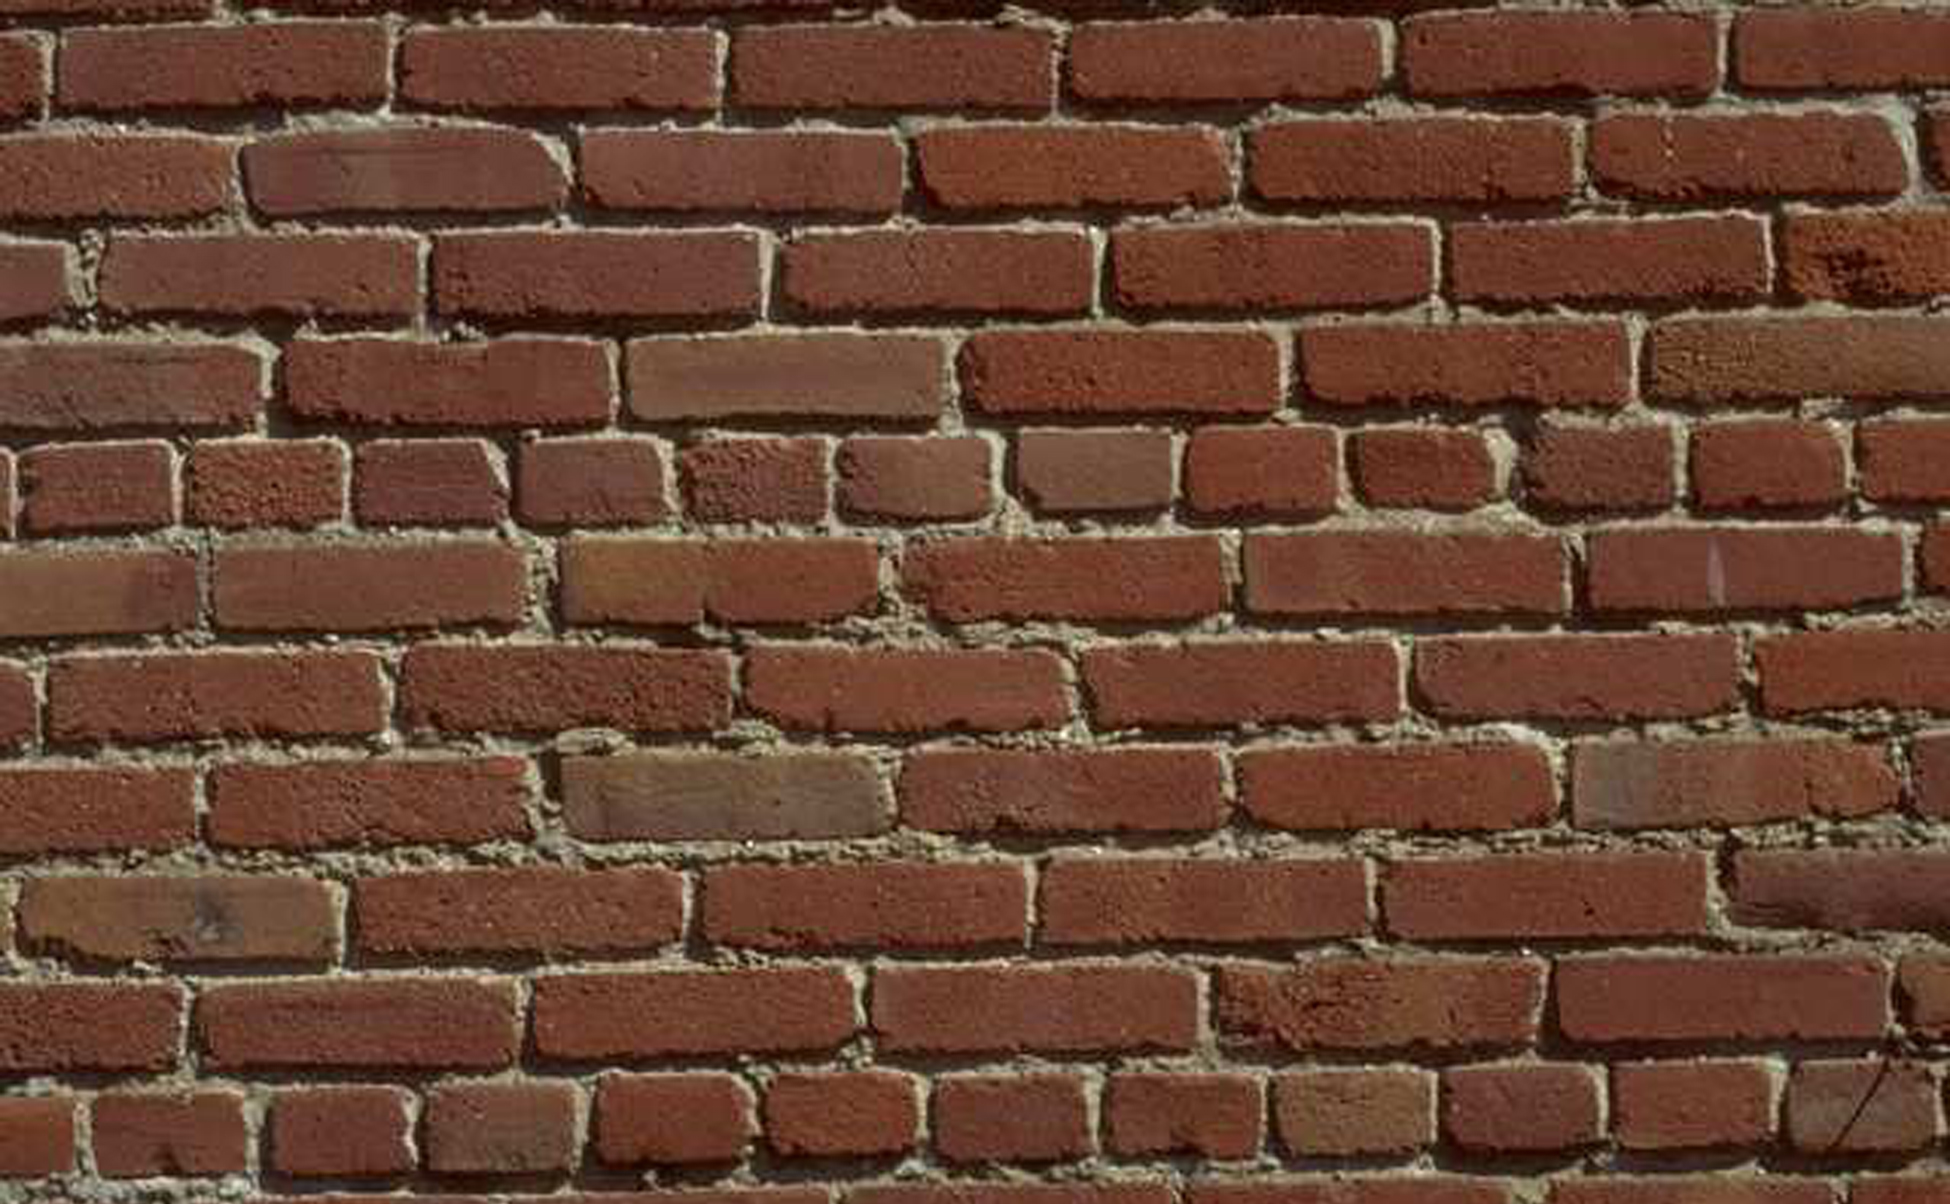 High Resolution Brick Texture Png Clipart image #23892